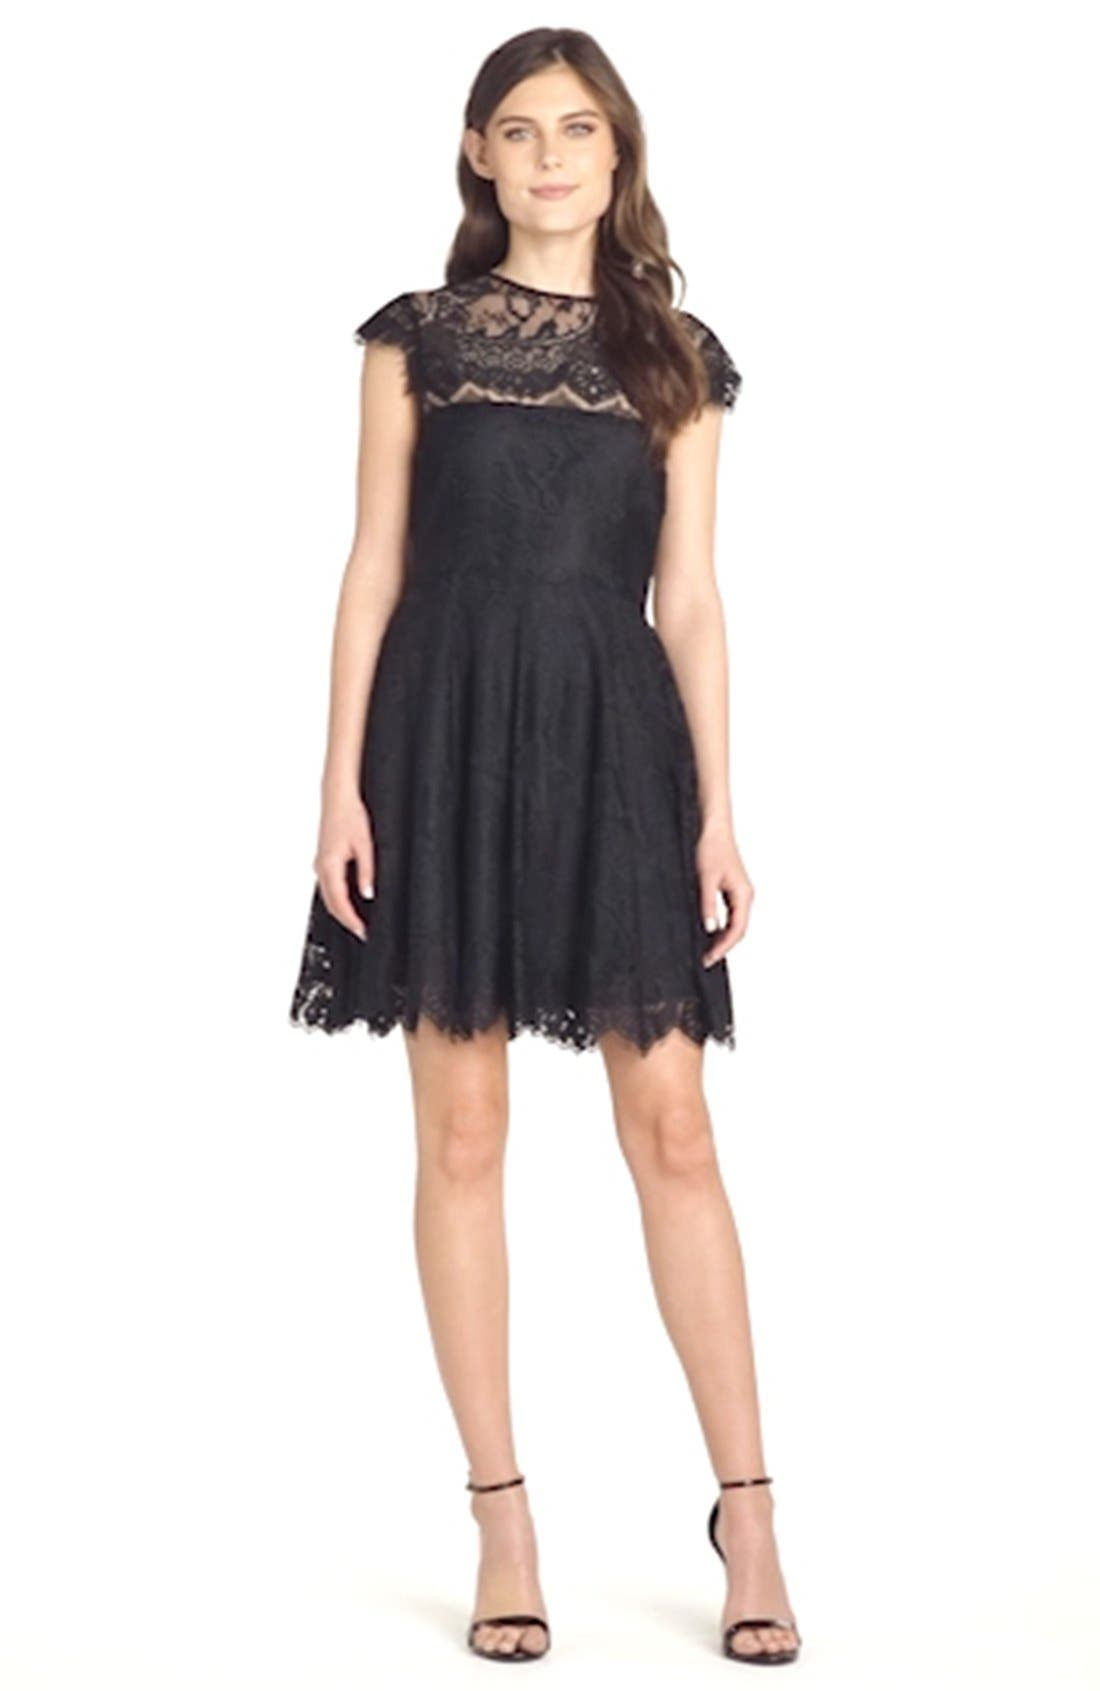 'Rhianna' Illusion Yoke Lace Fit & Flare Dress,                             Alternate thumbnail 11, color,                             BLACK